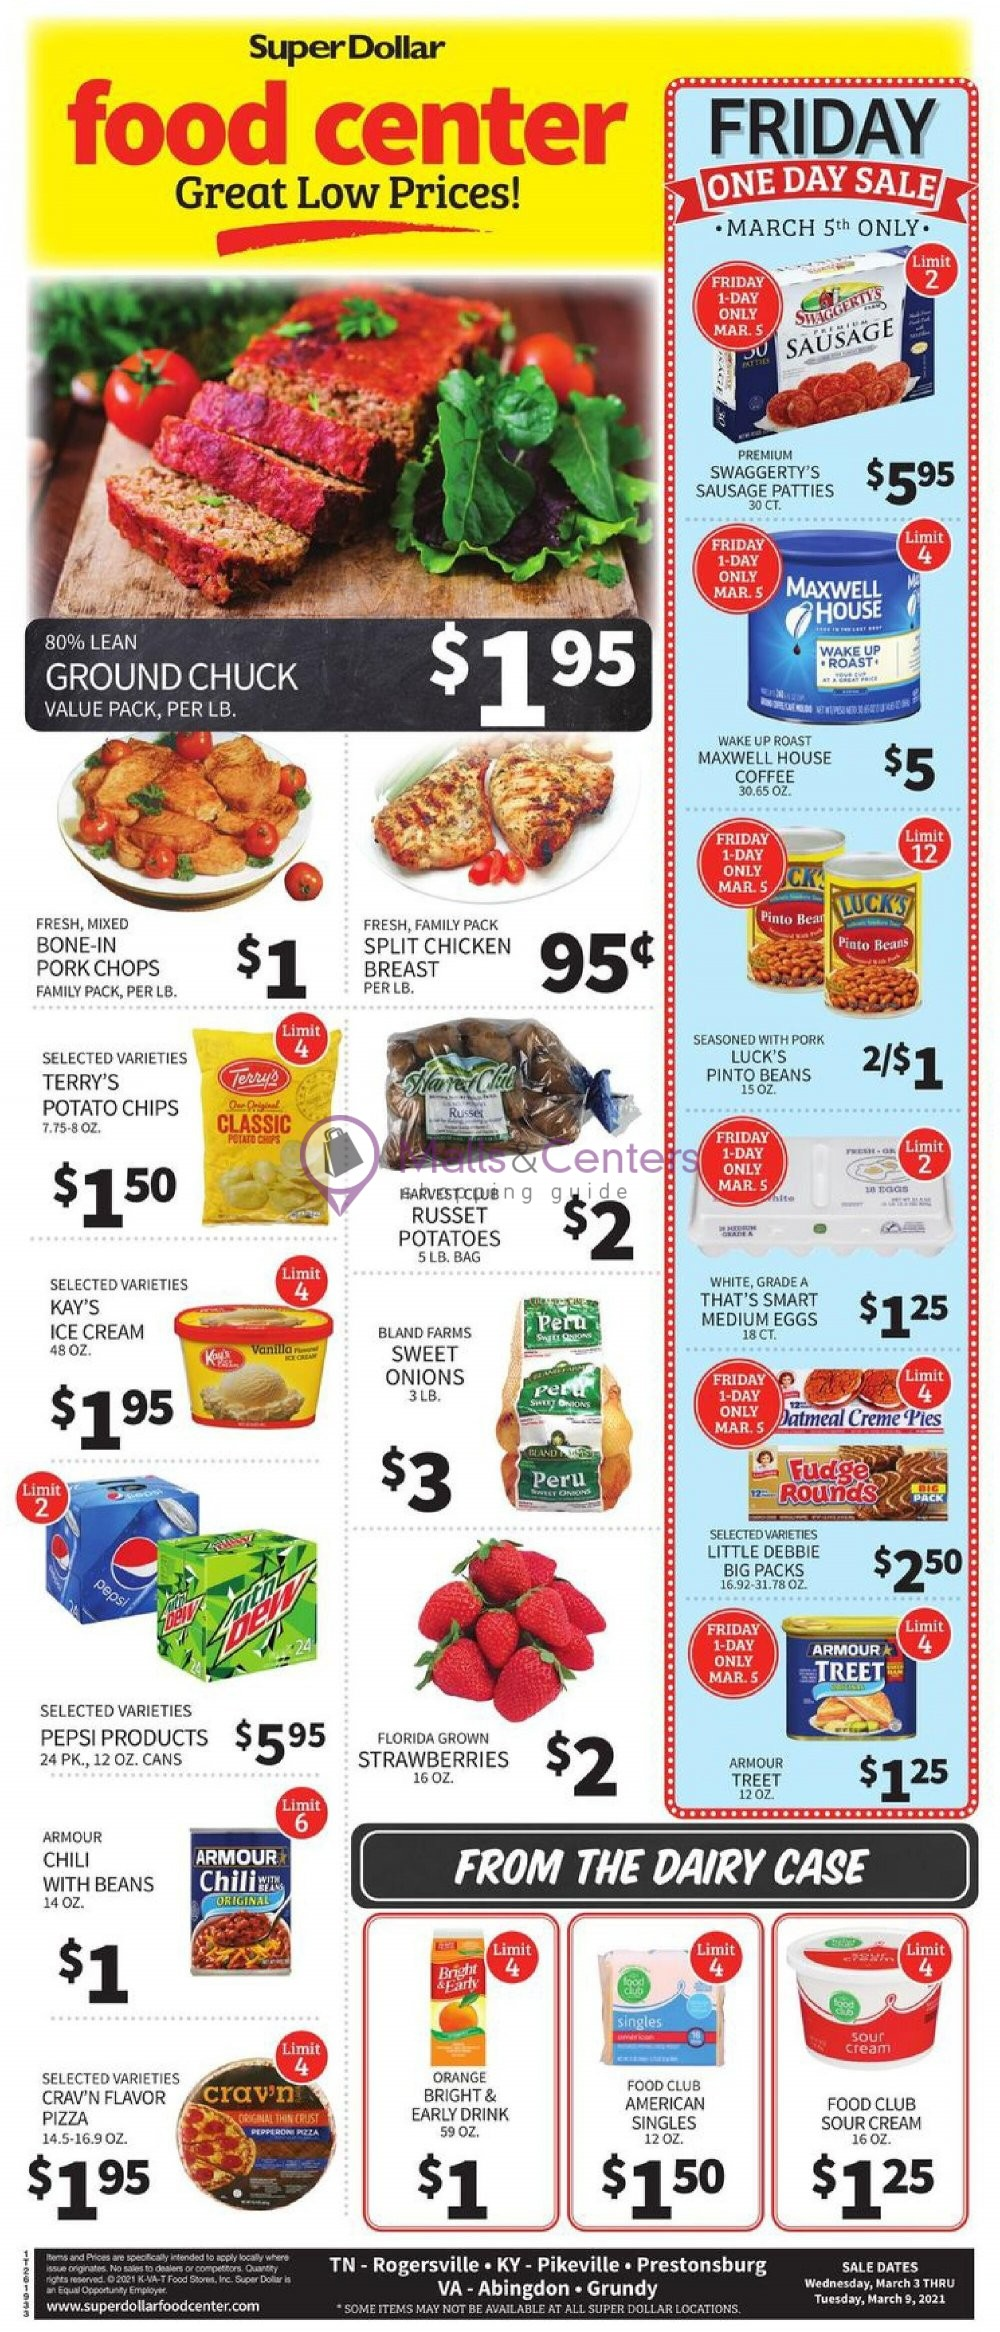 weekly ads SuperDollar Food Center - page 1 - mallscenters.com